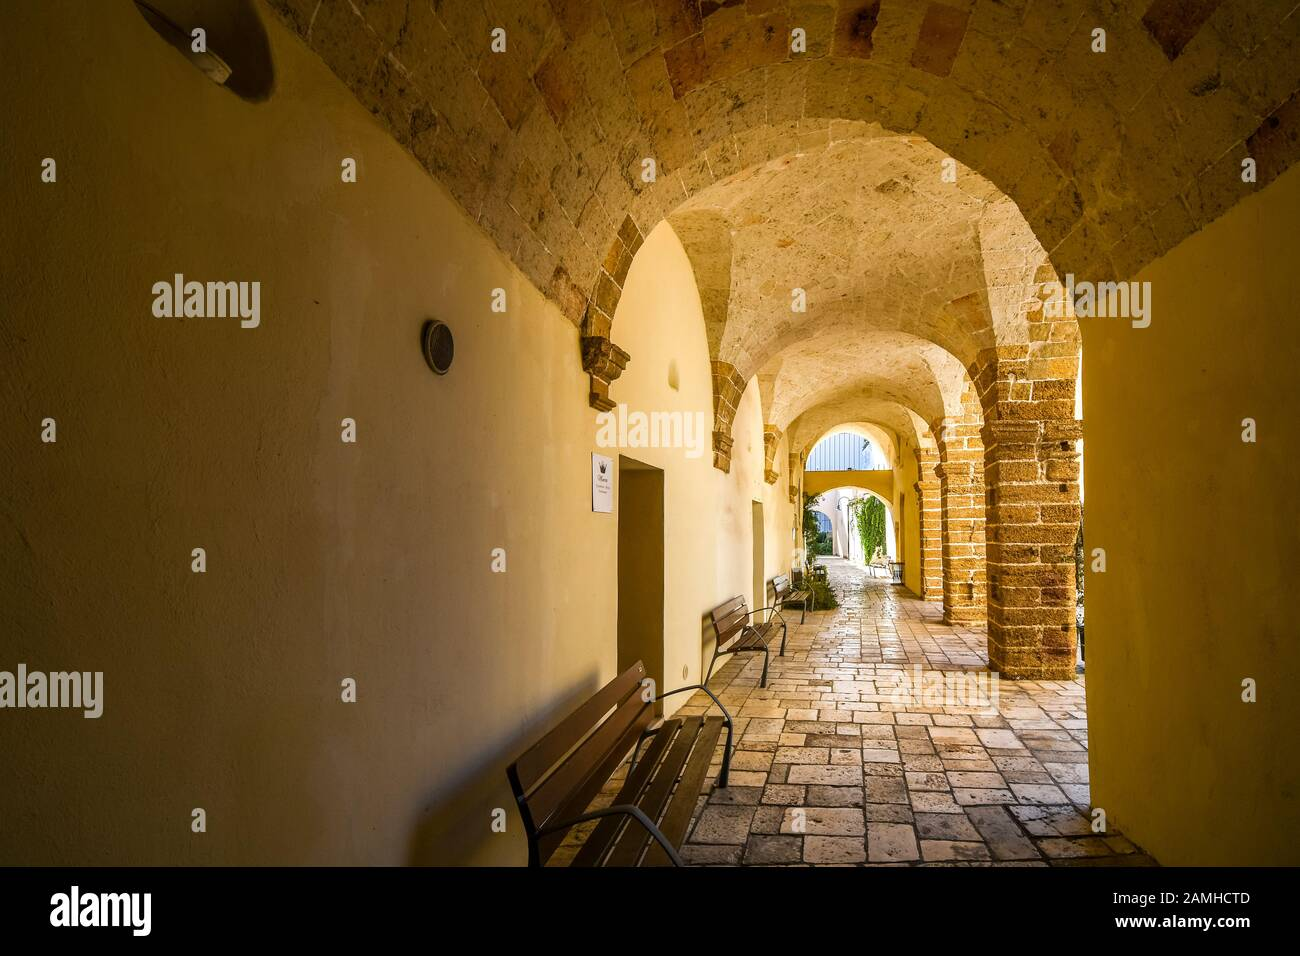 A long, covered and arched portico hallway in the historic center of Brindisi, Italy, on the coast of the Adriatic Sea in the Puglia region. Stock Photo